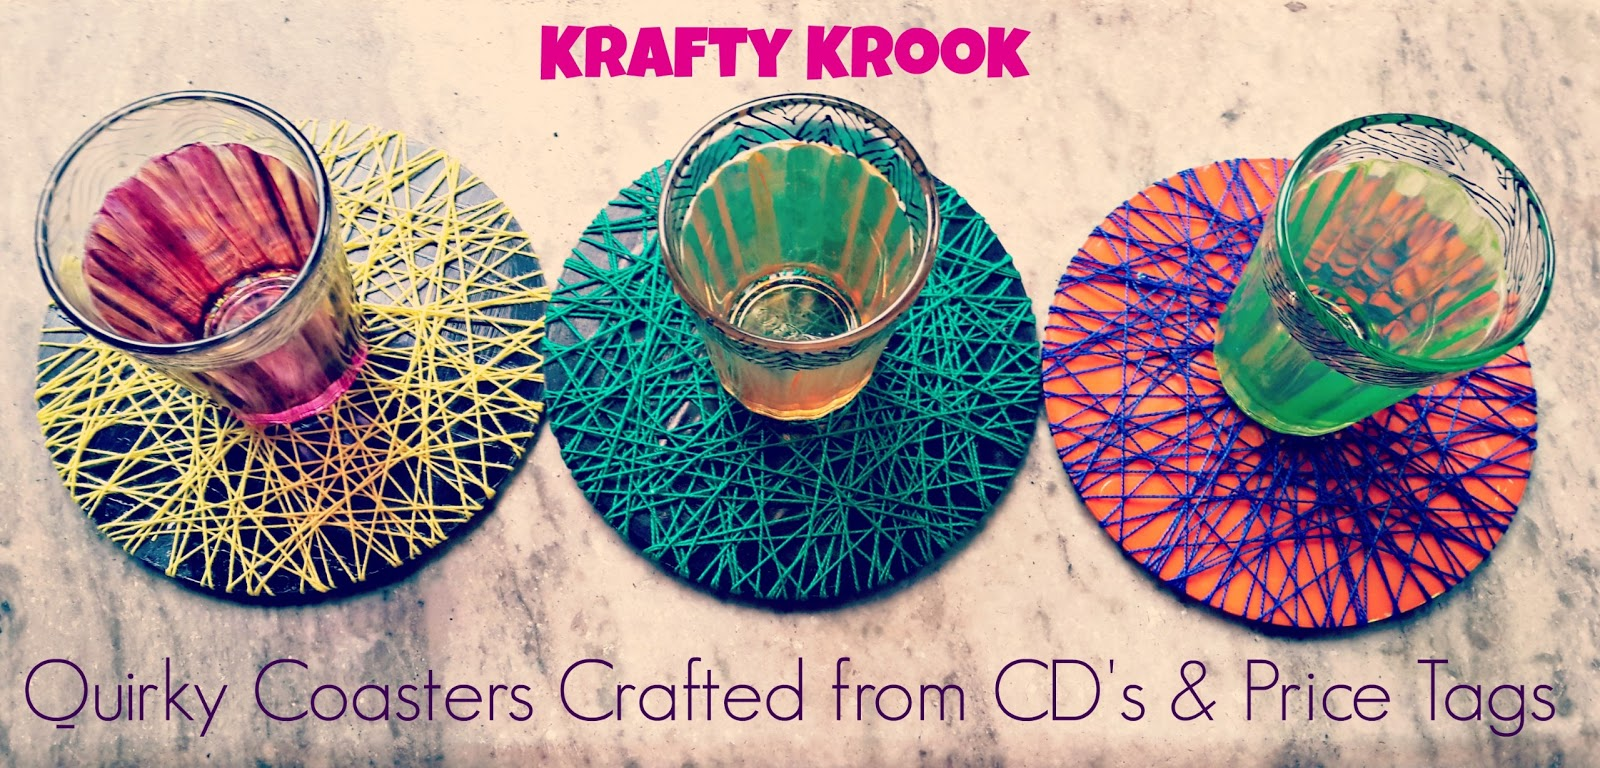 Krafty Krook Diy Quirky Coasters From Cd 39 S And Price Tags